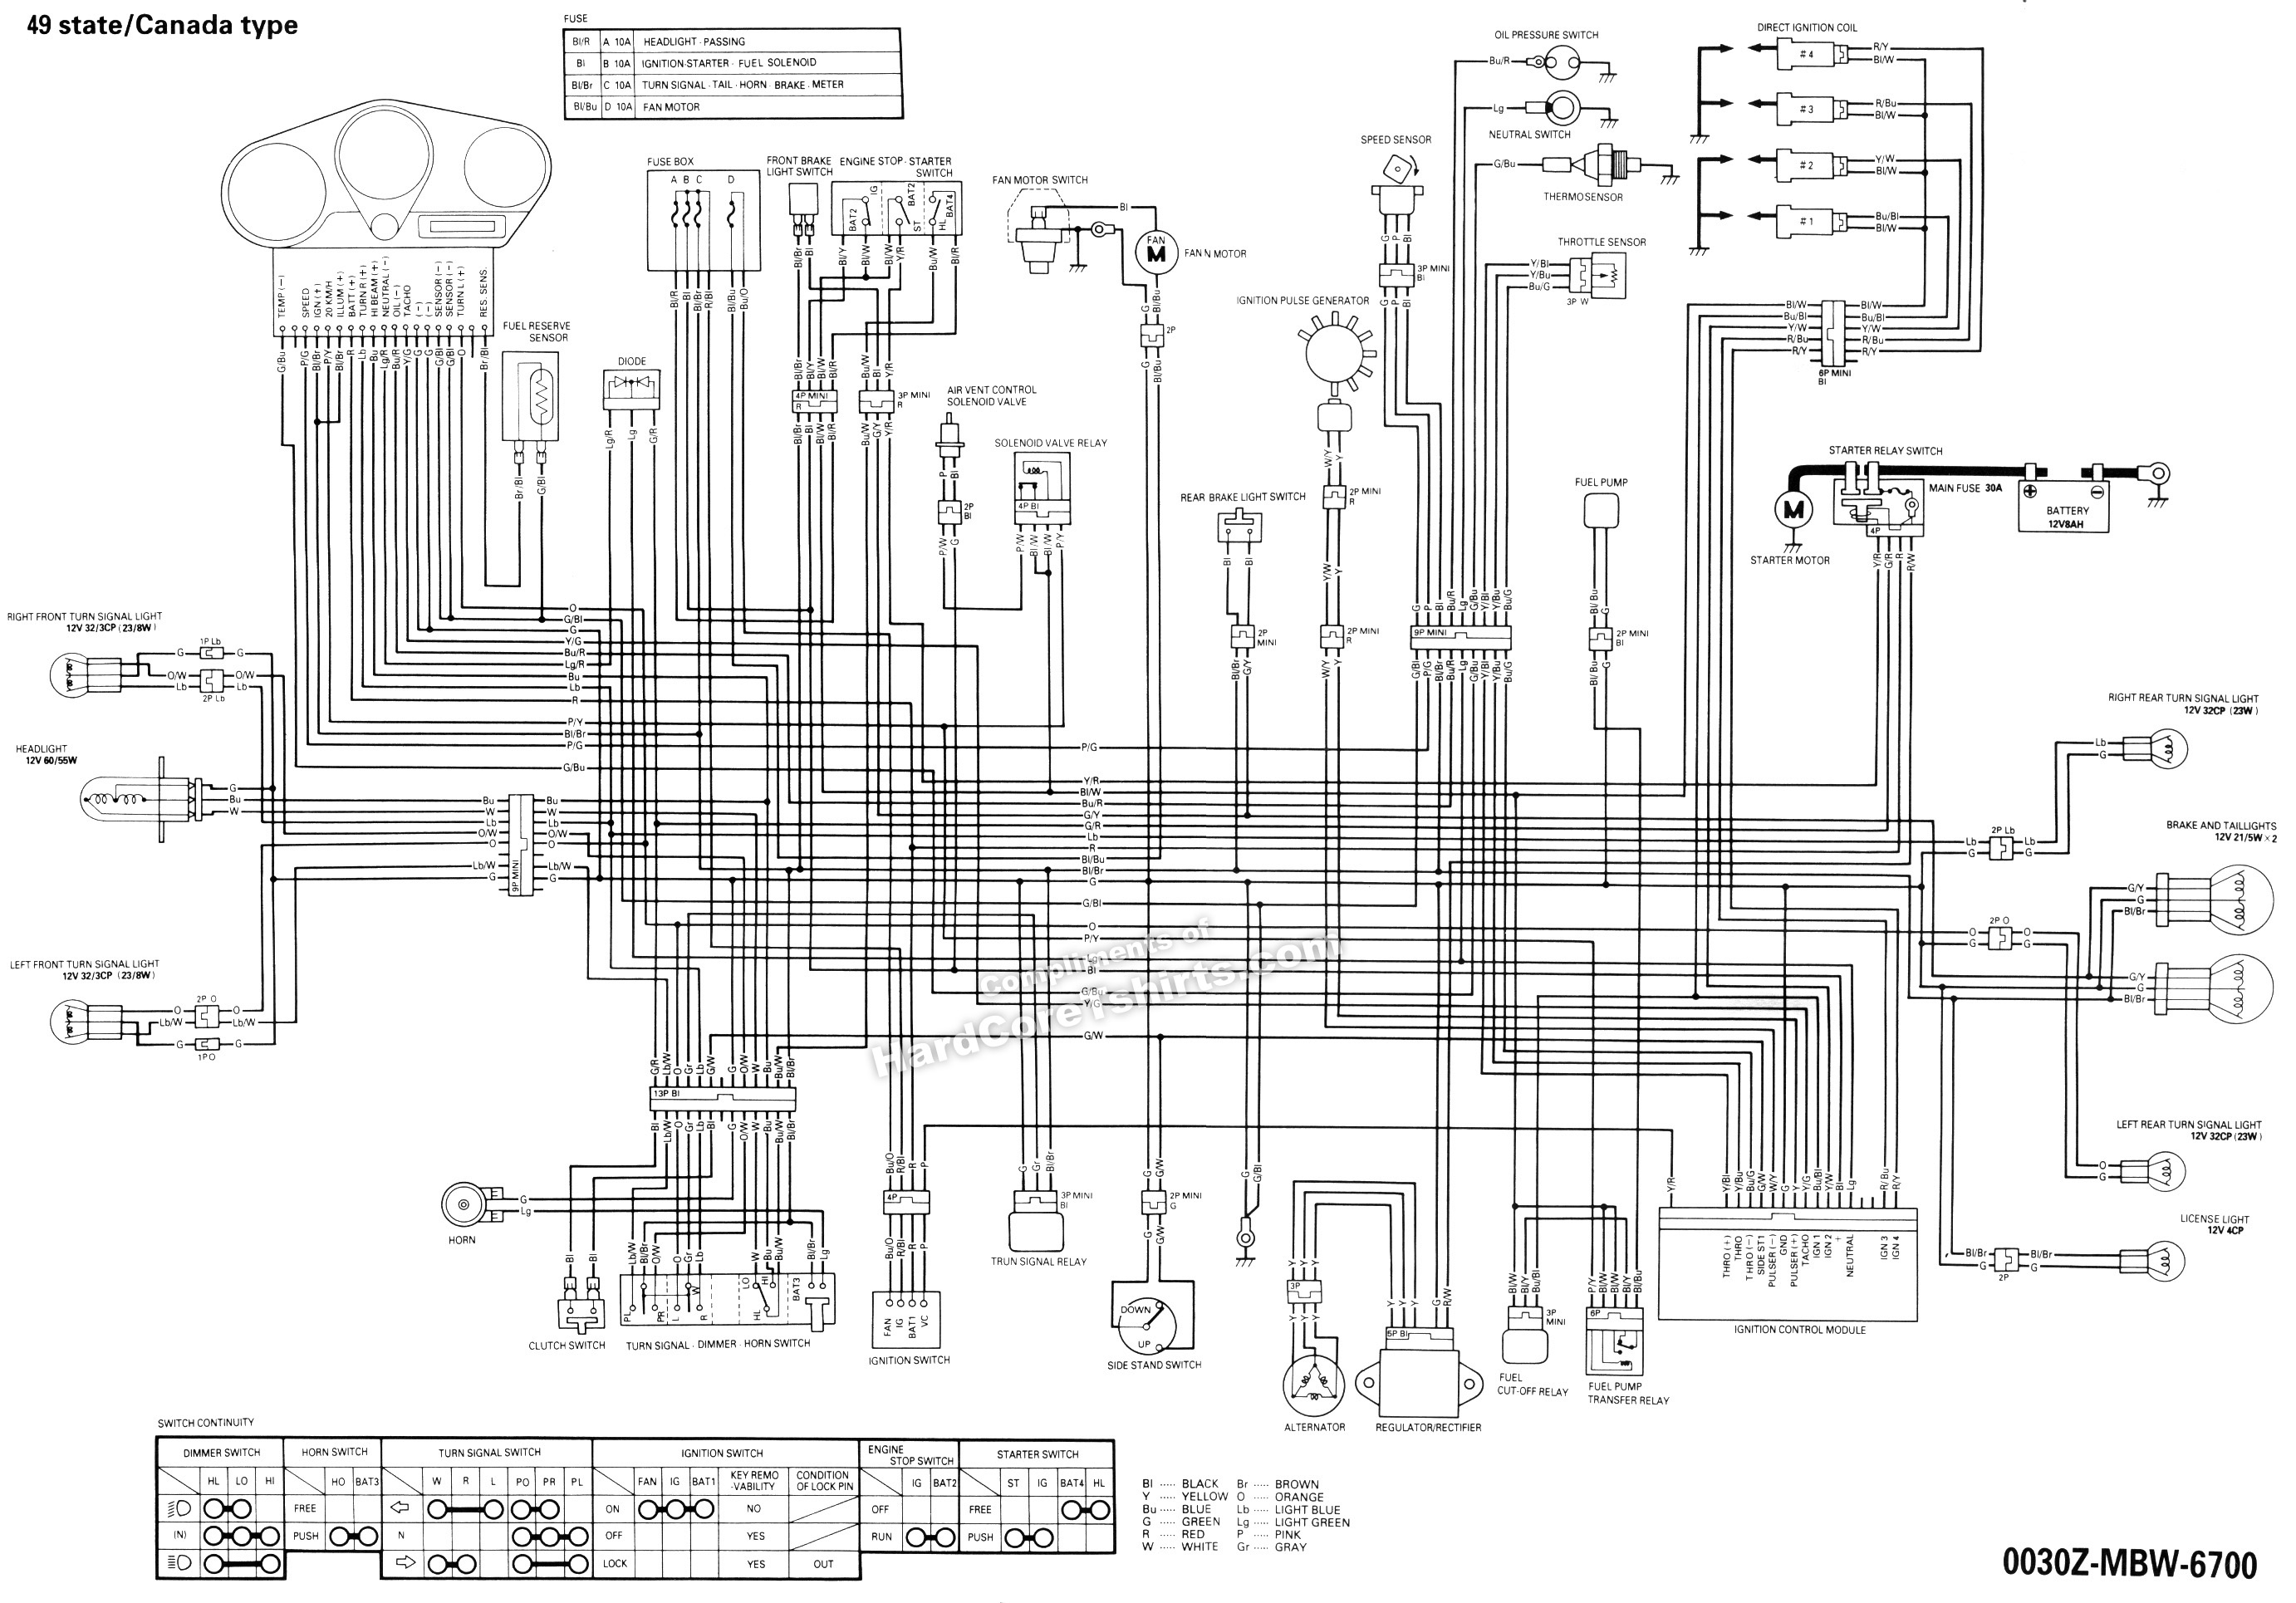 wiring harness gsxr wiring wiring diagrams cbrf4wiringdiagramfn5 wiring harness gsxr cbrf4wiringdiagramfn5